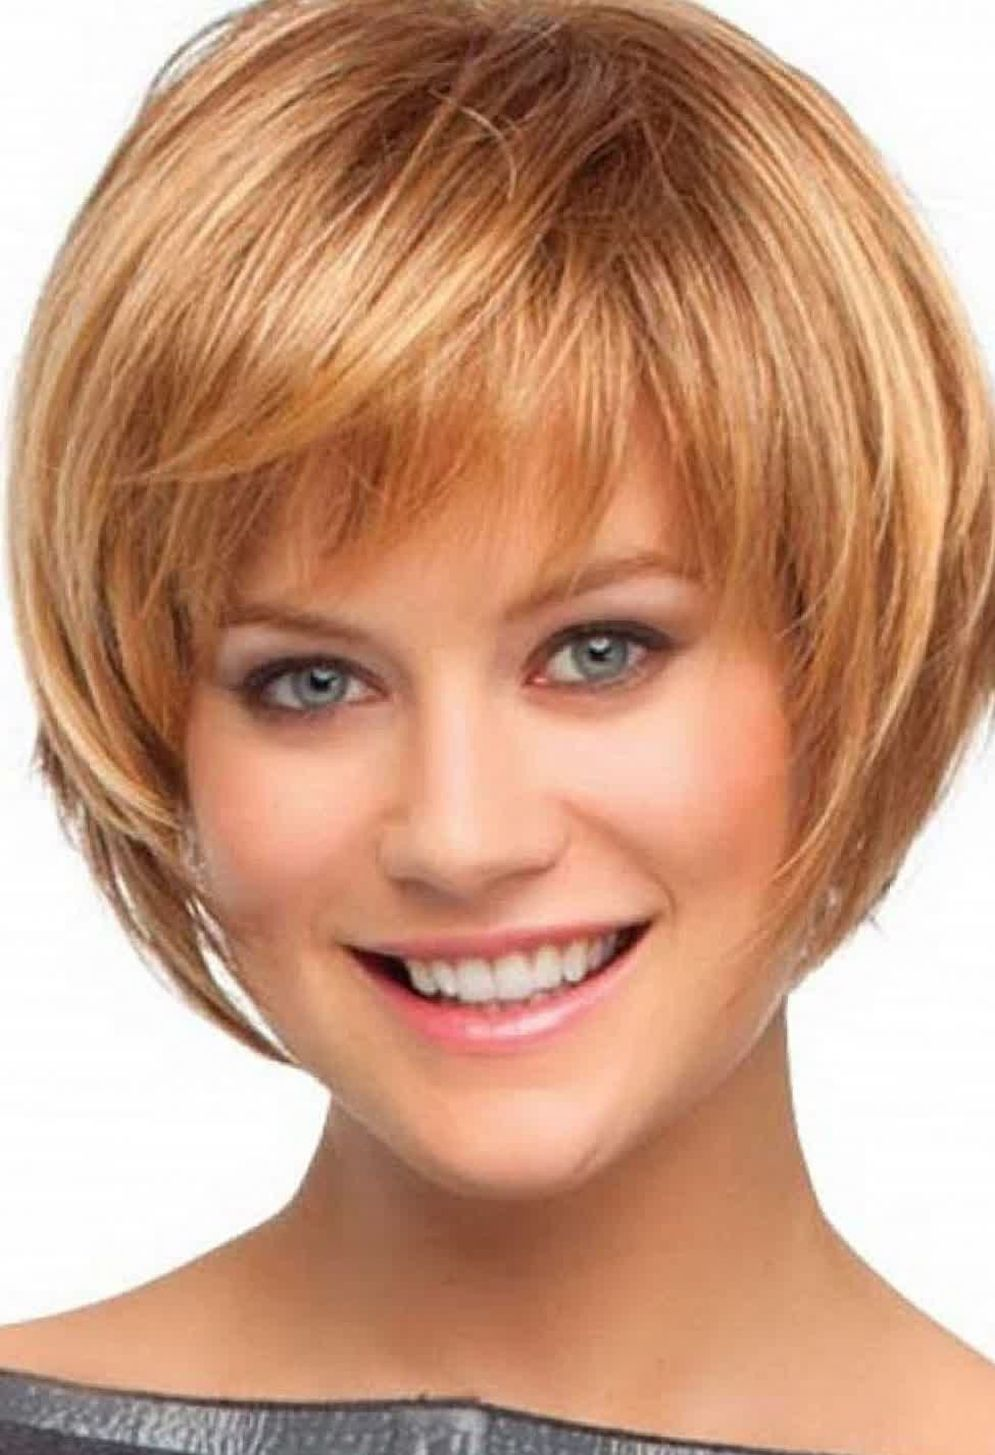 short hairstyles for older women with baby fine hair | Photos Of ...